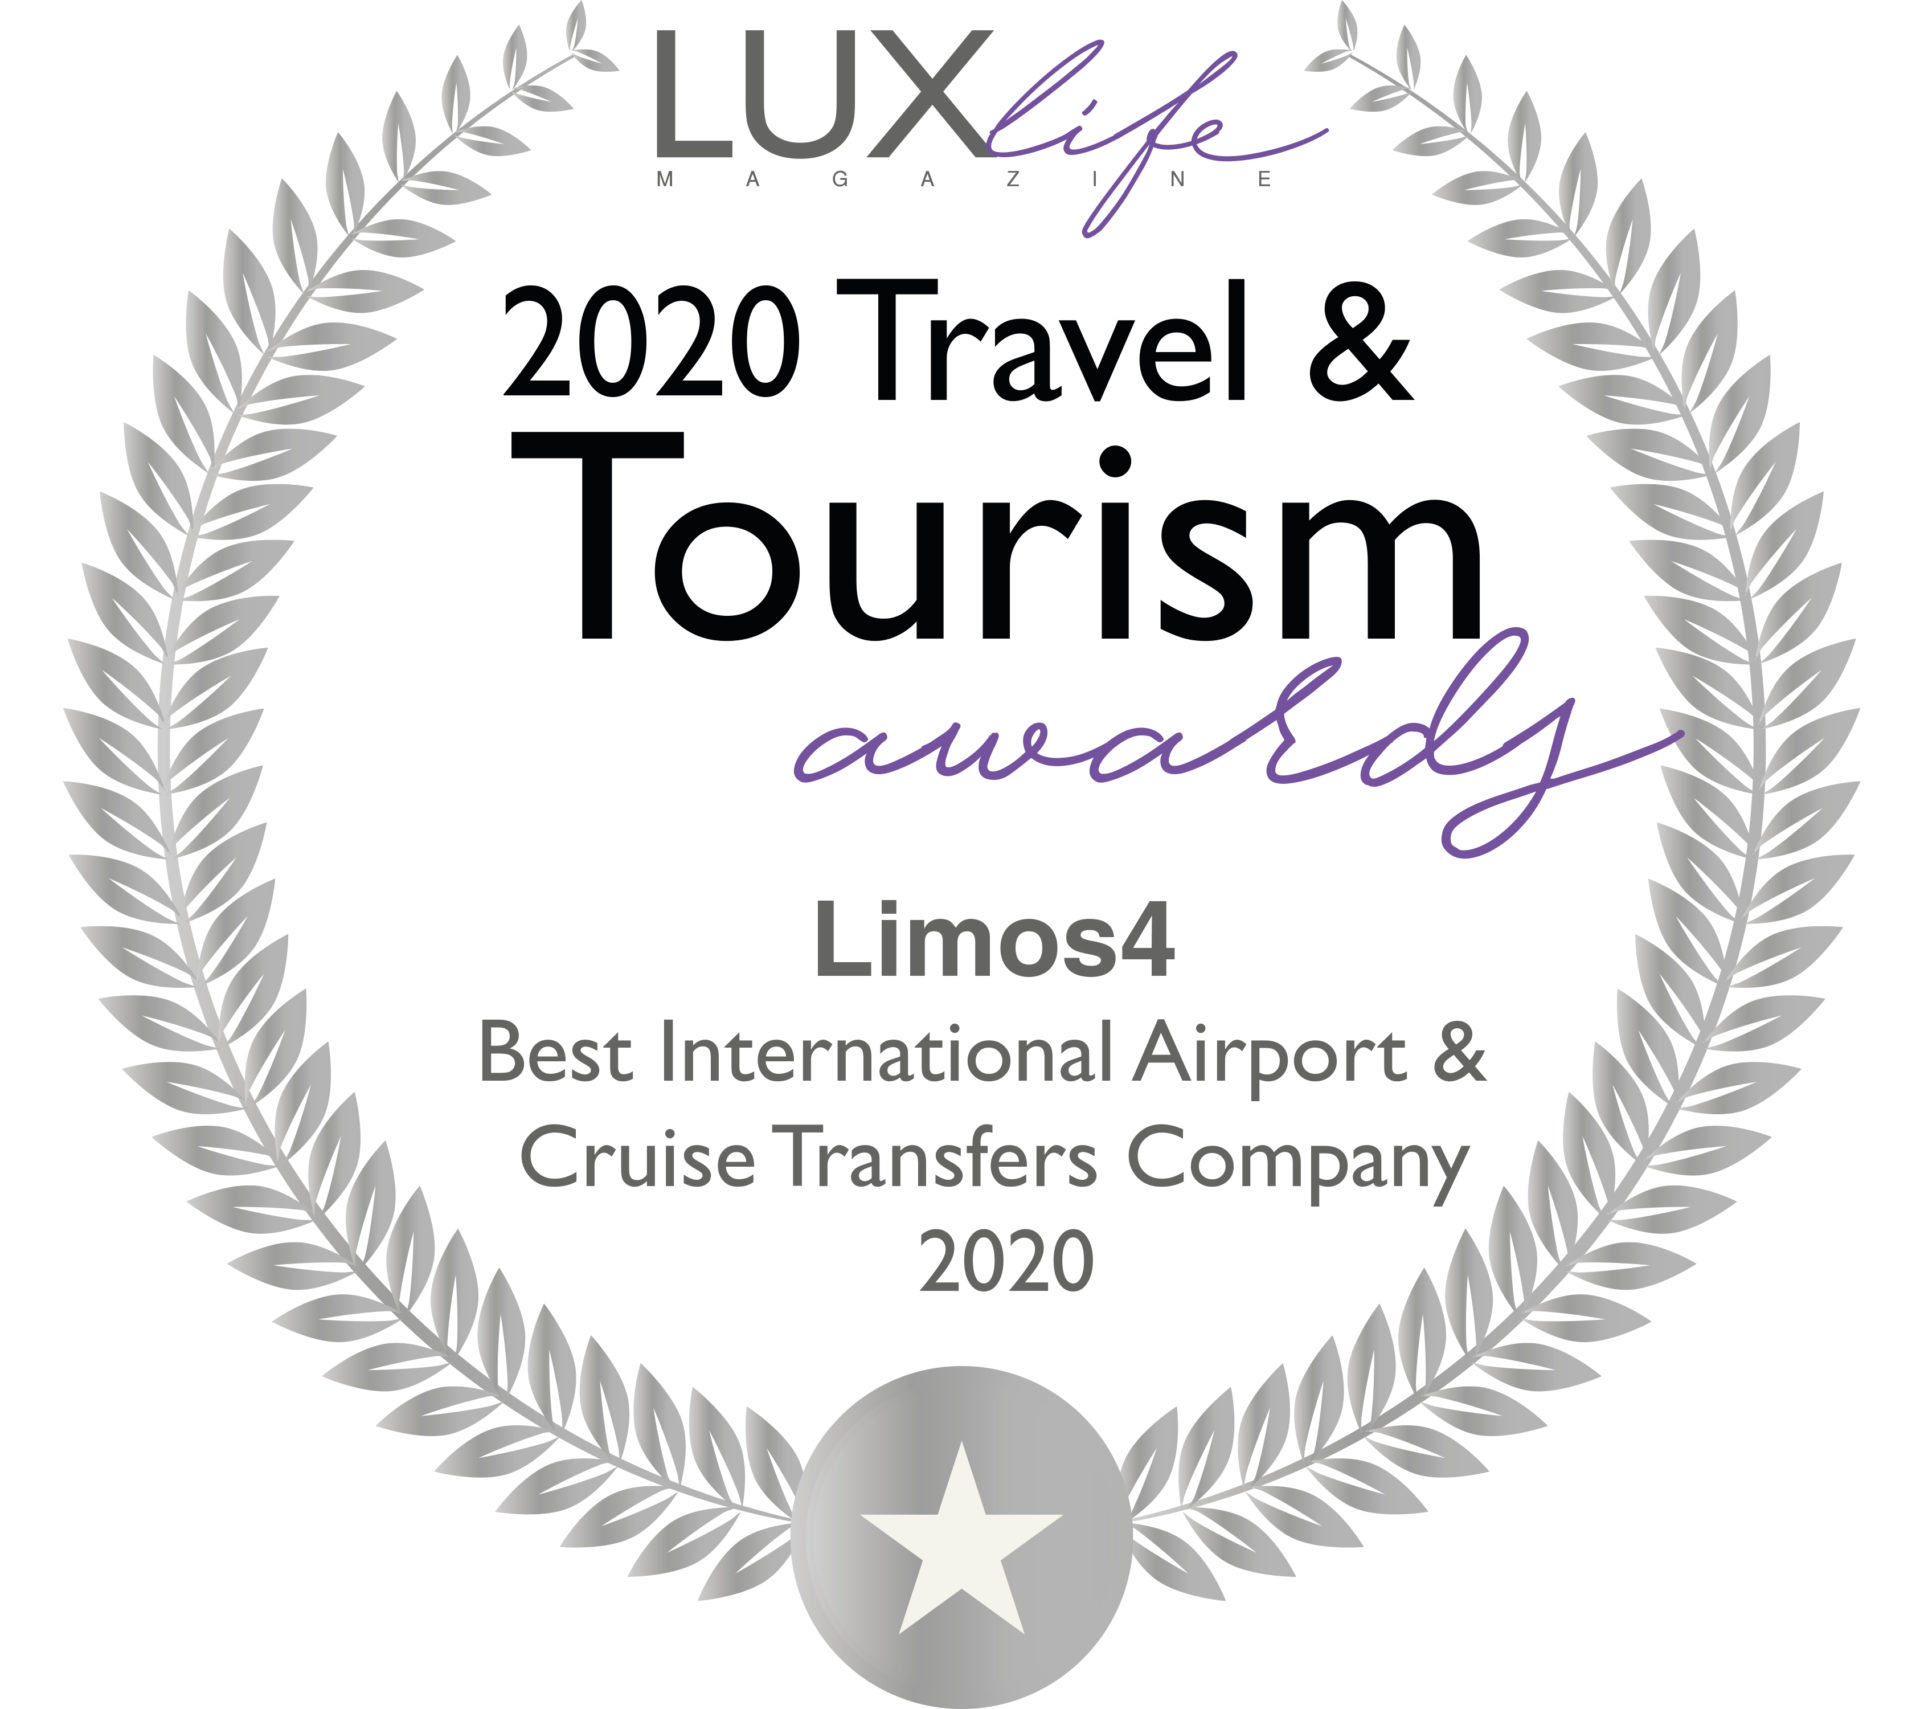 Limos4 Awarded Best International Airport & Cruise Transfers Company 2020